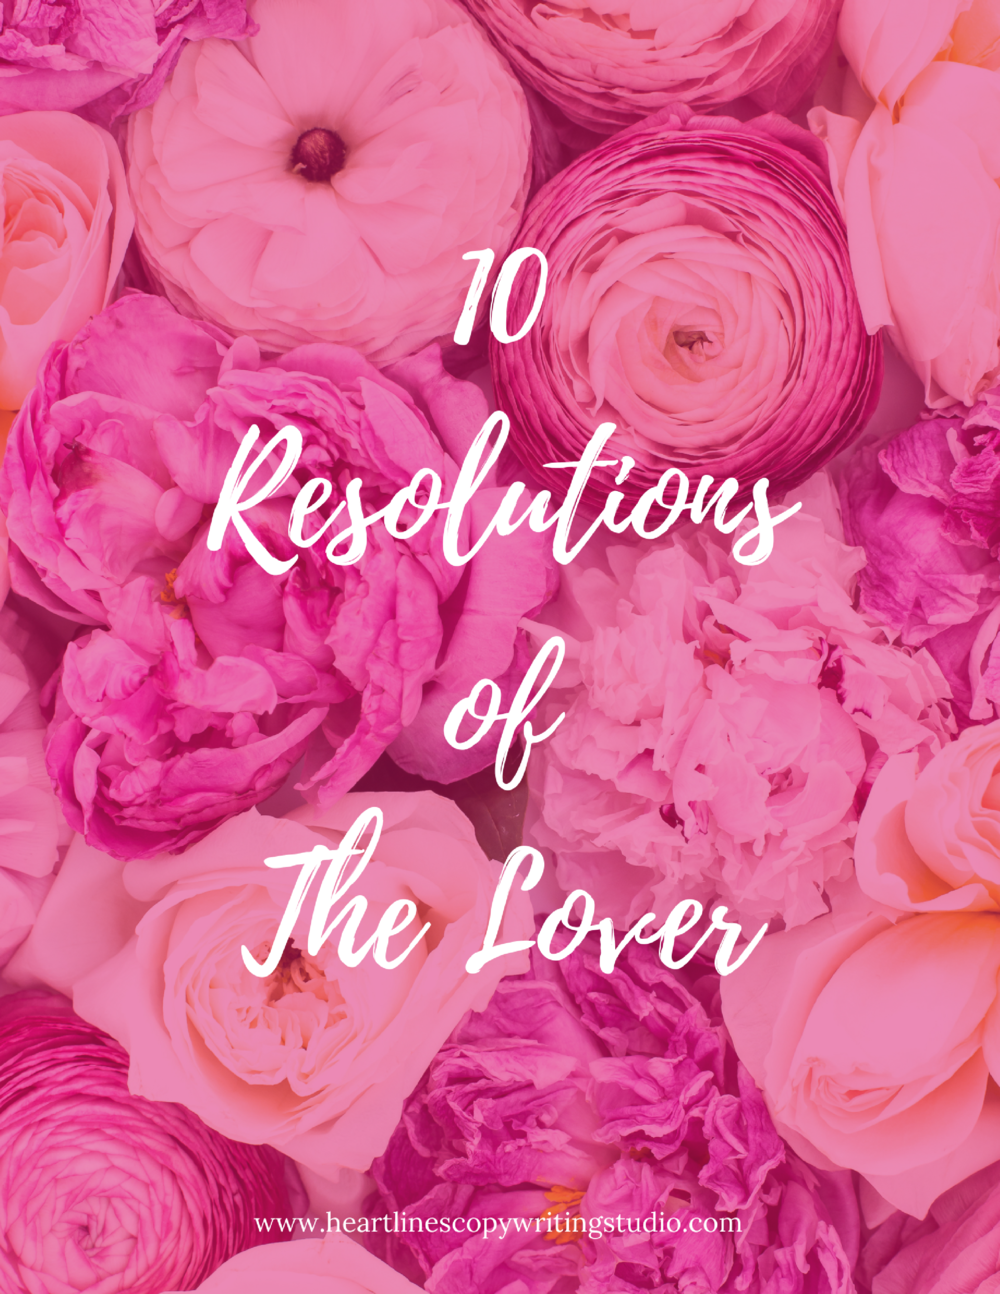 Download the PDF version of The 10 Resolutions of The Lover right here.